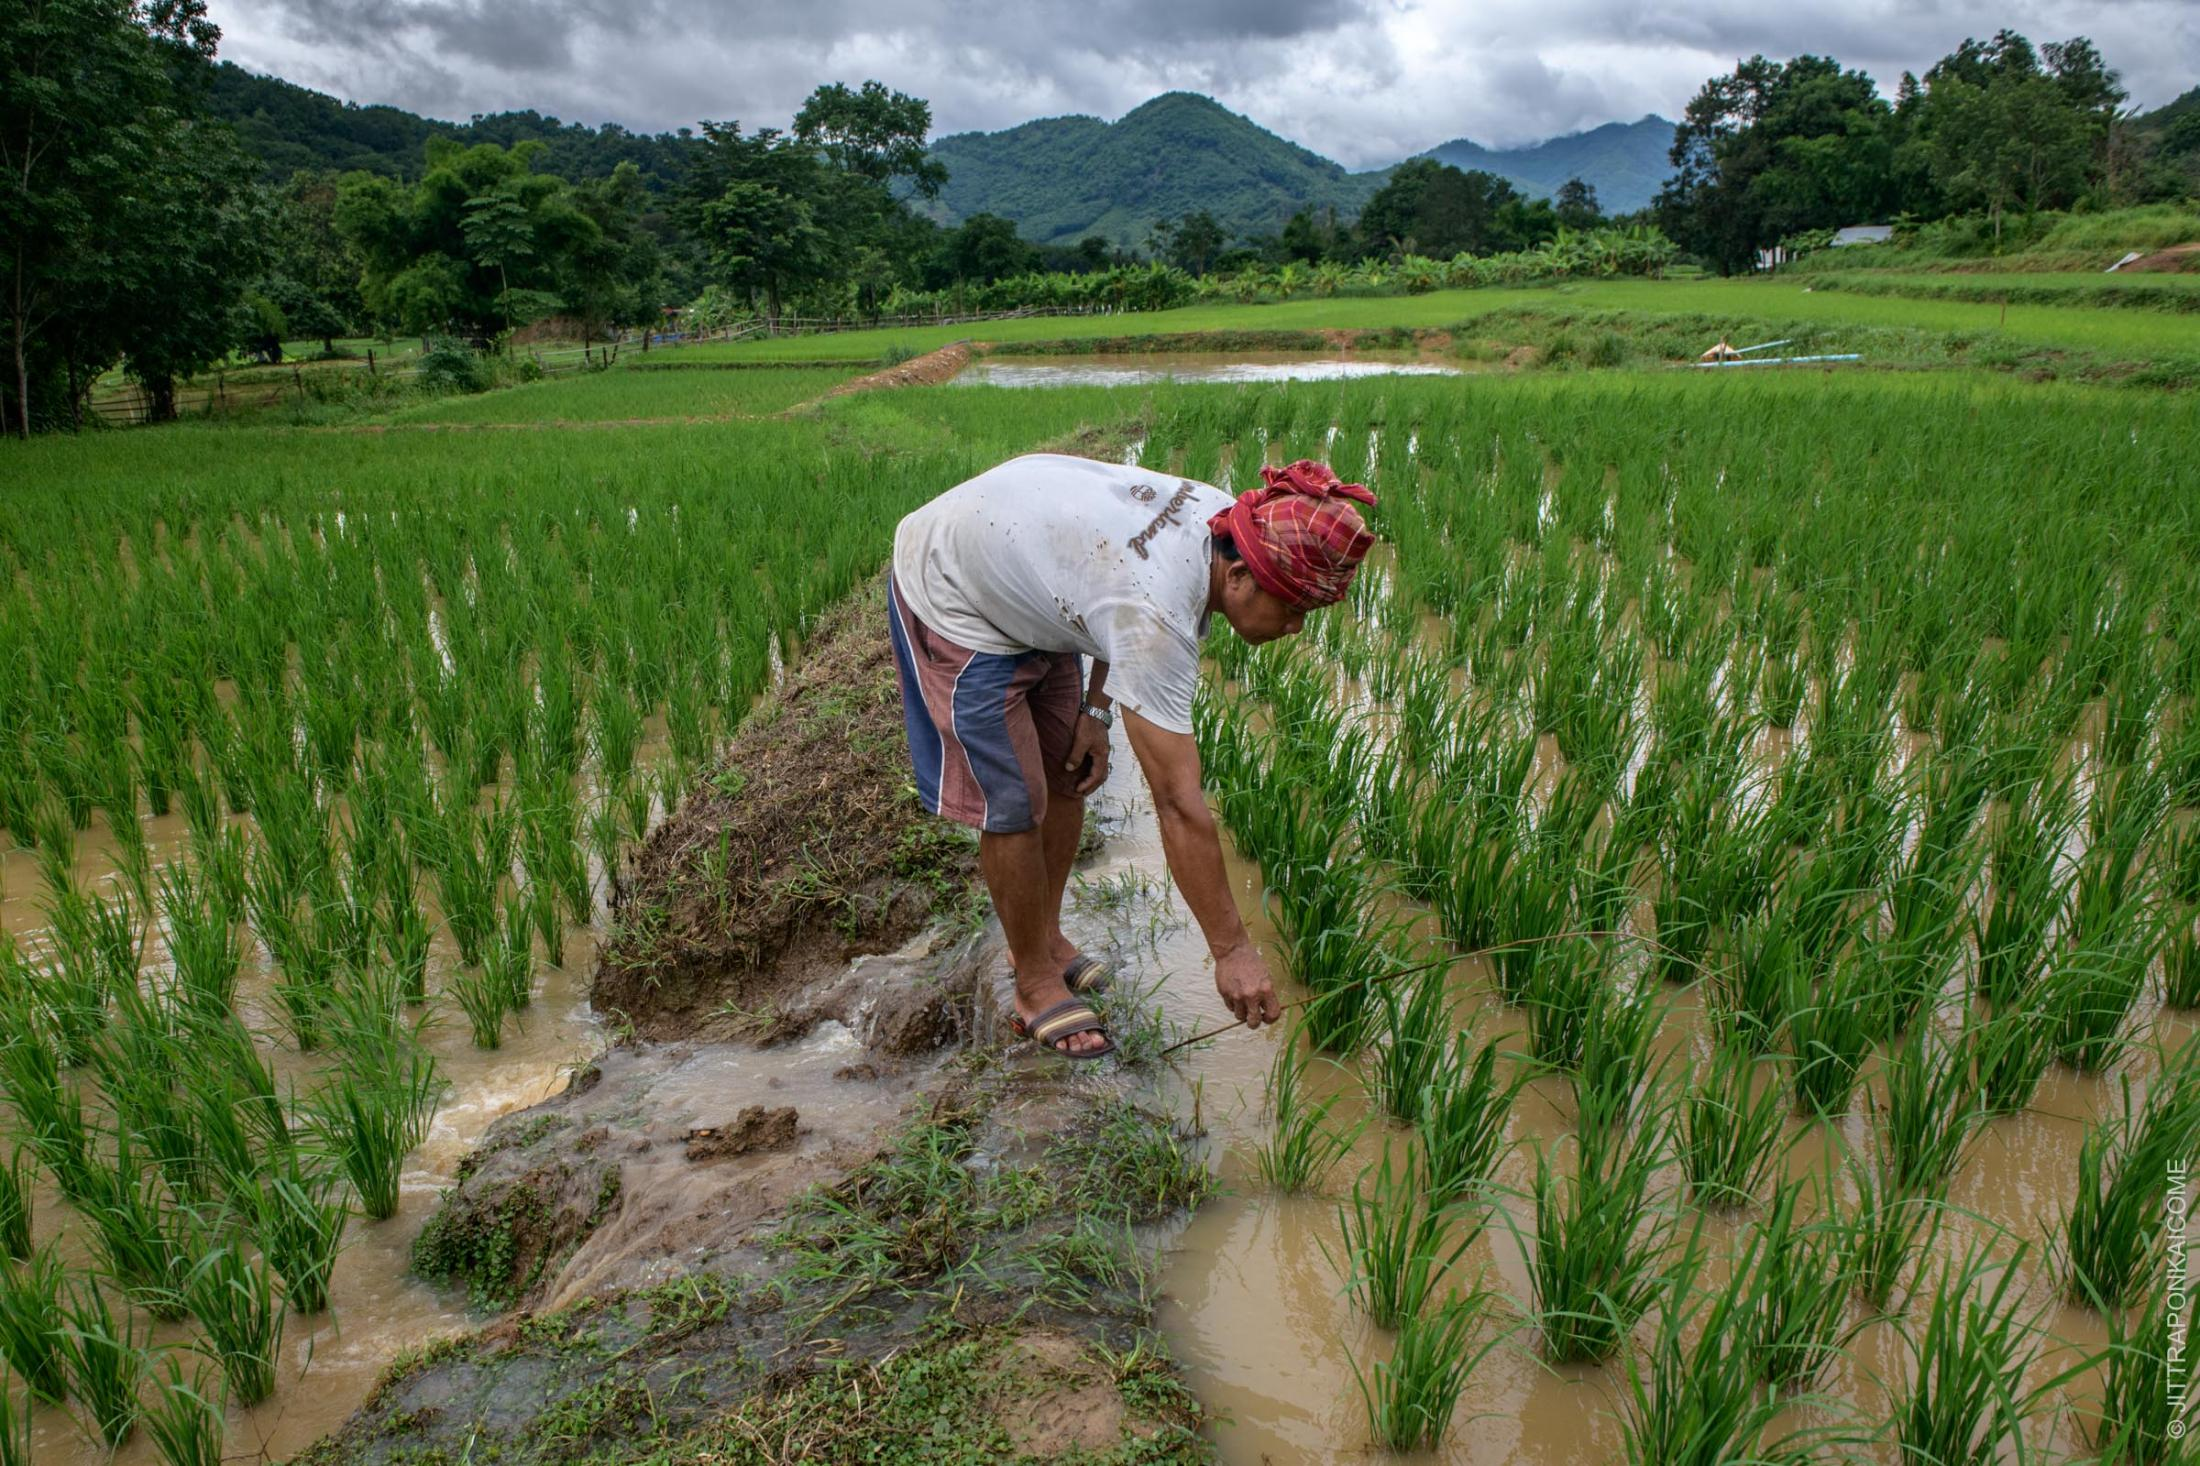 A fisherman is placing a small rod to trap fish in the rice field. Many of the fishers now work as rice farmers to increase their income, after the fishing industry became unprofitable. Sangkhom district, Nong Khai, Thailand – August 2020.